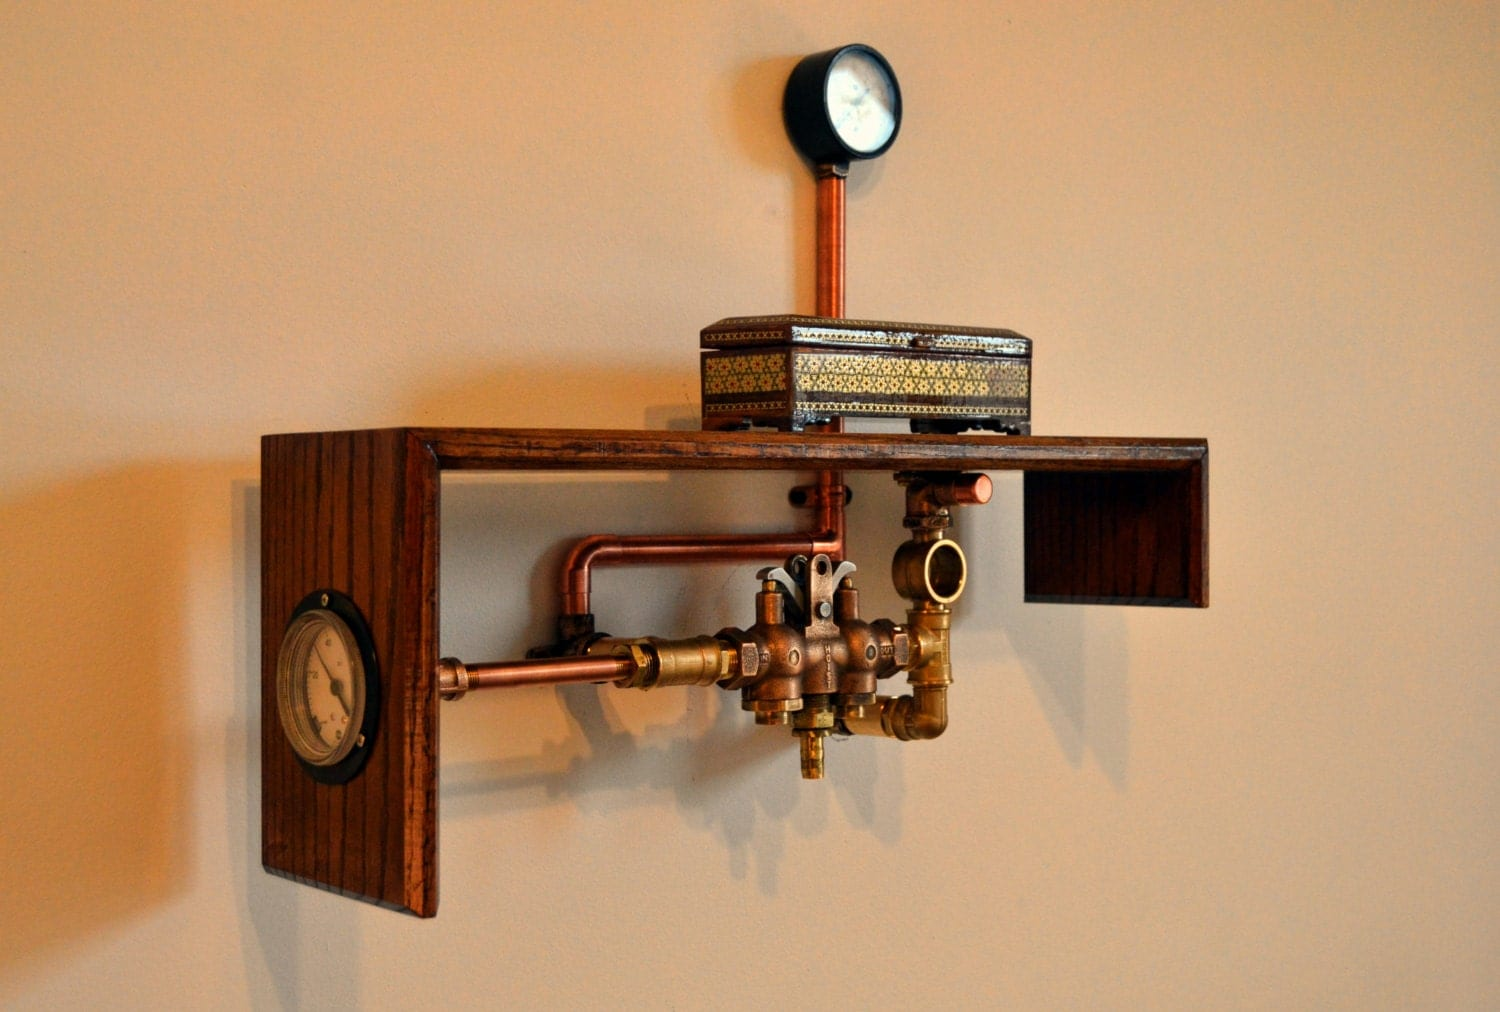 Soldsteampunk industrial home decor steampunk furniture for Home decor items on sale